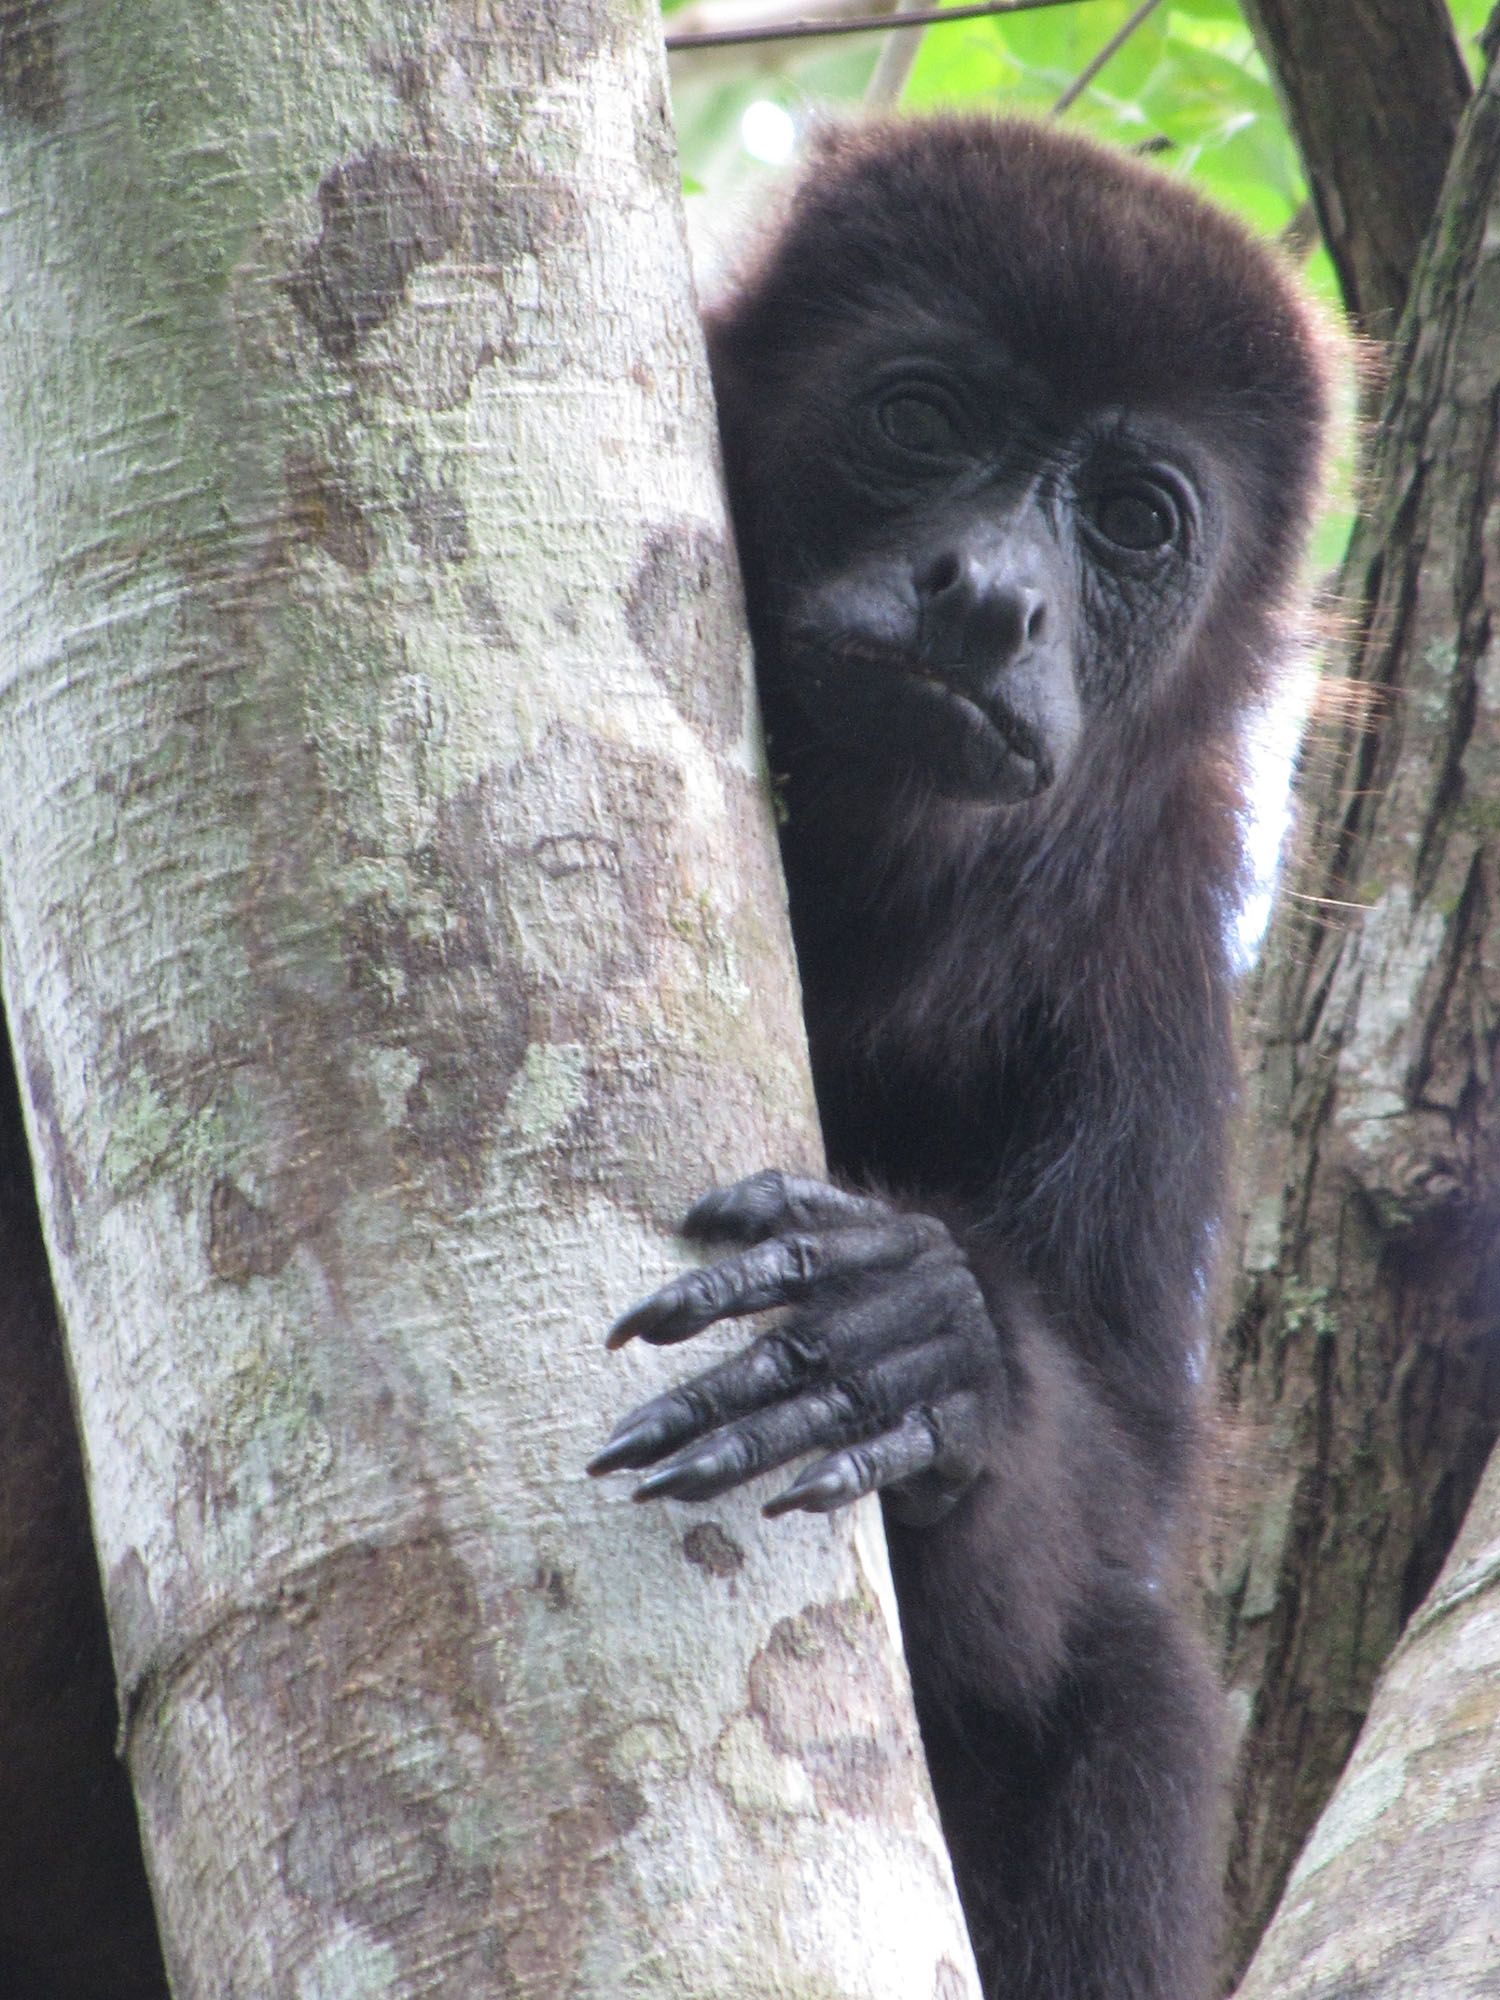 A female mantled howler monkey in Tabasco, Mexico. Image credit: Milagros Gonzalez